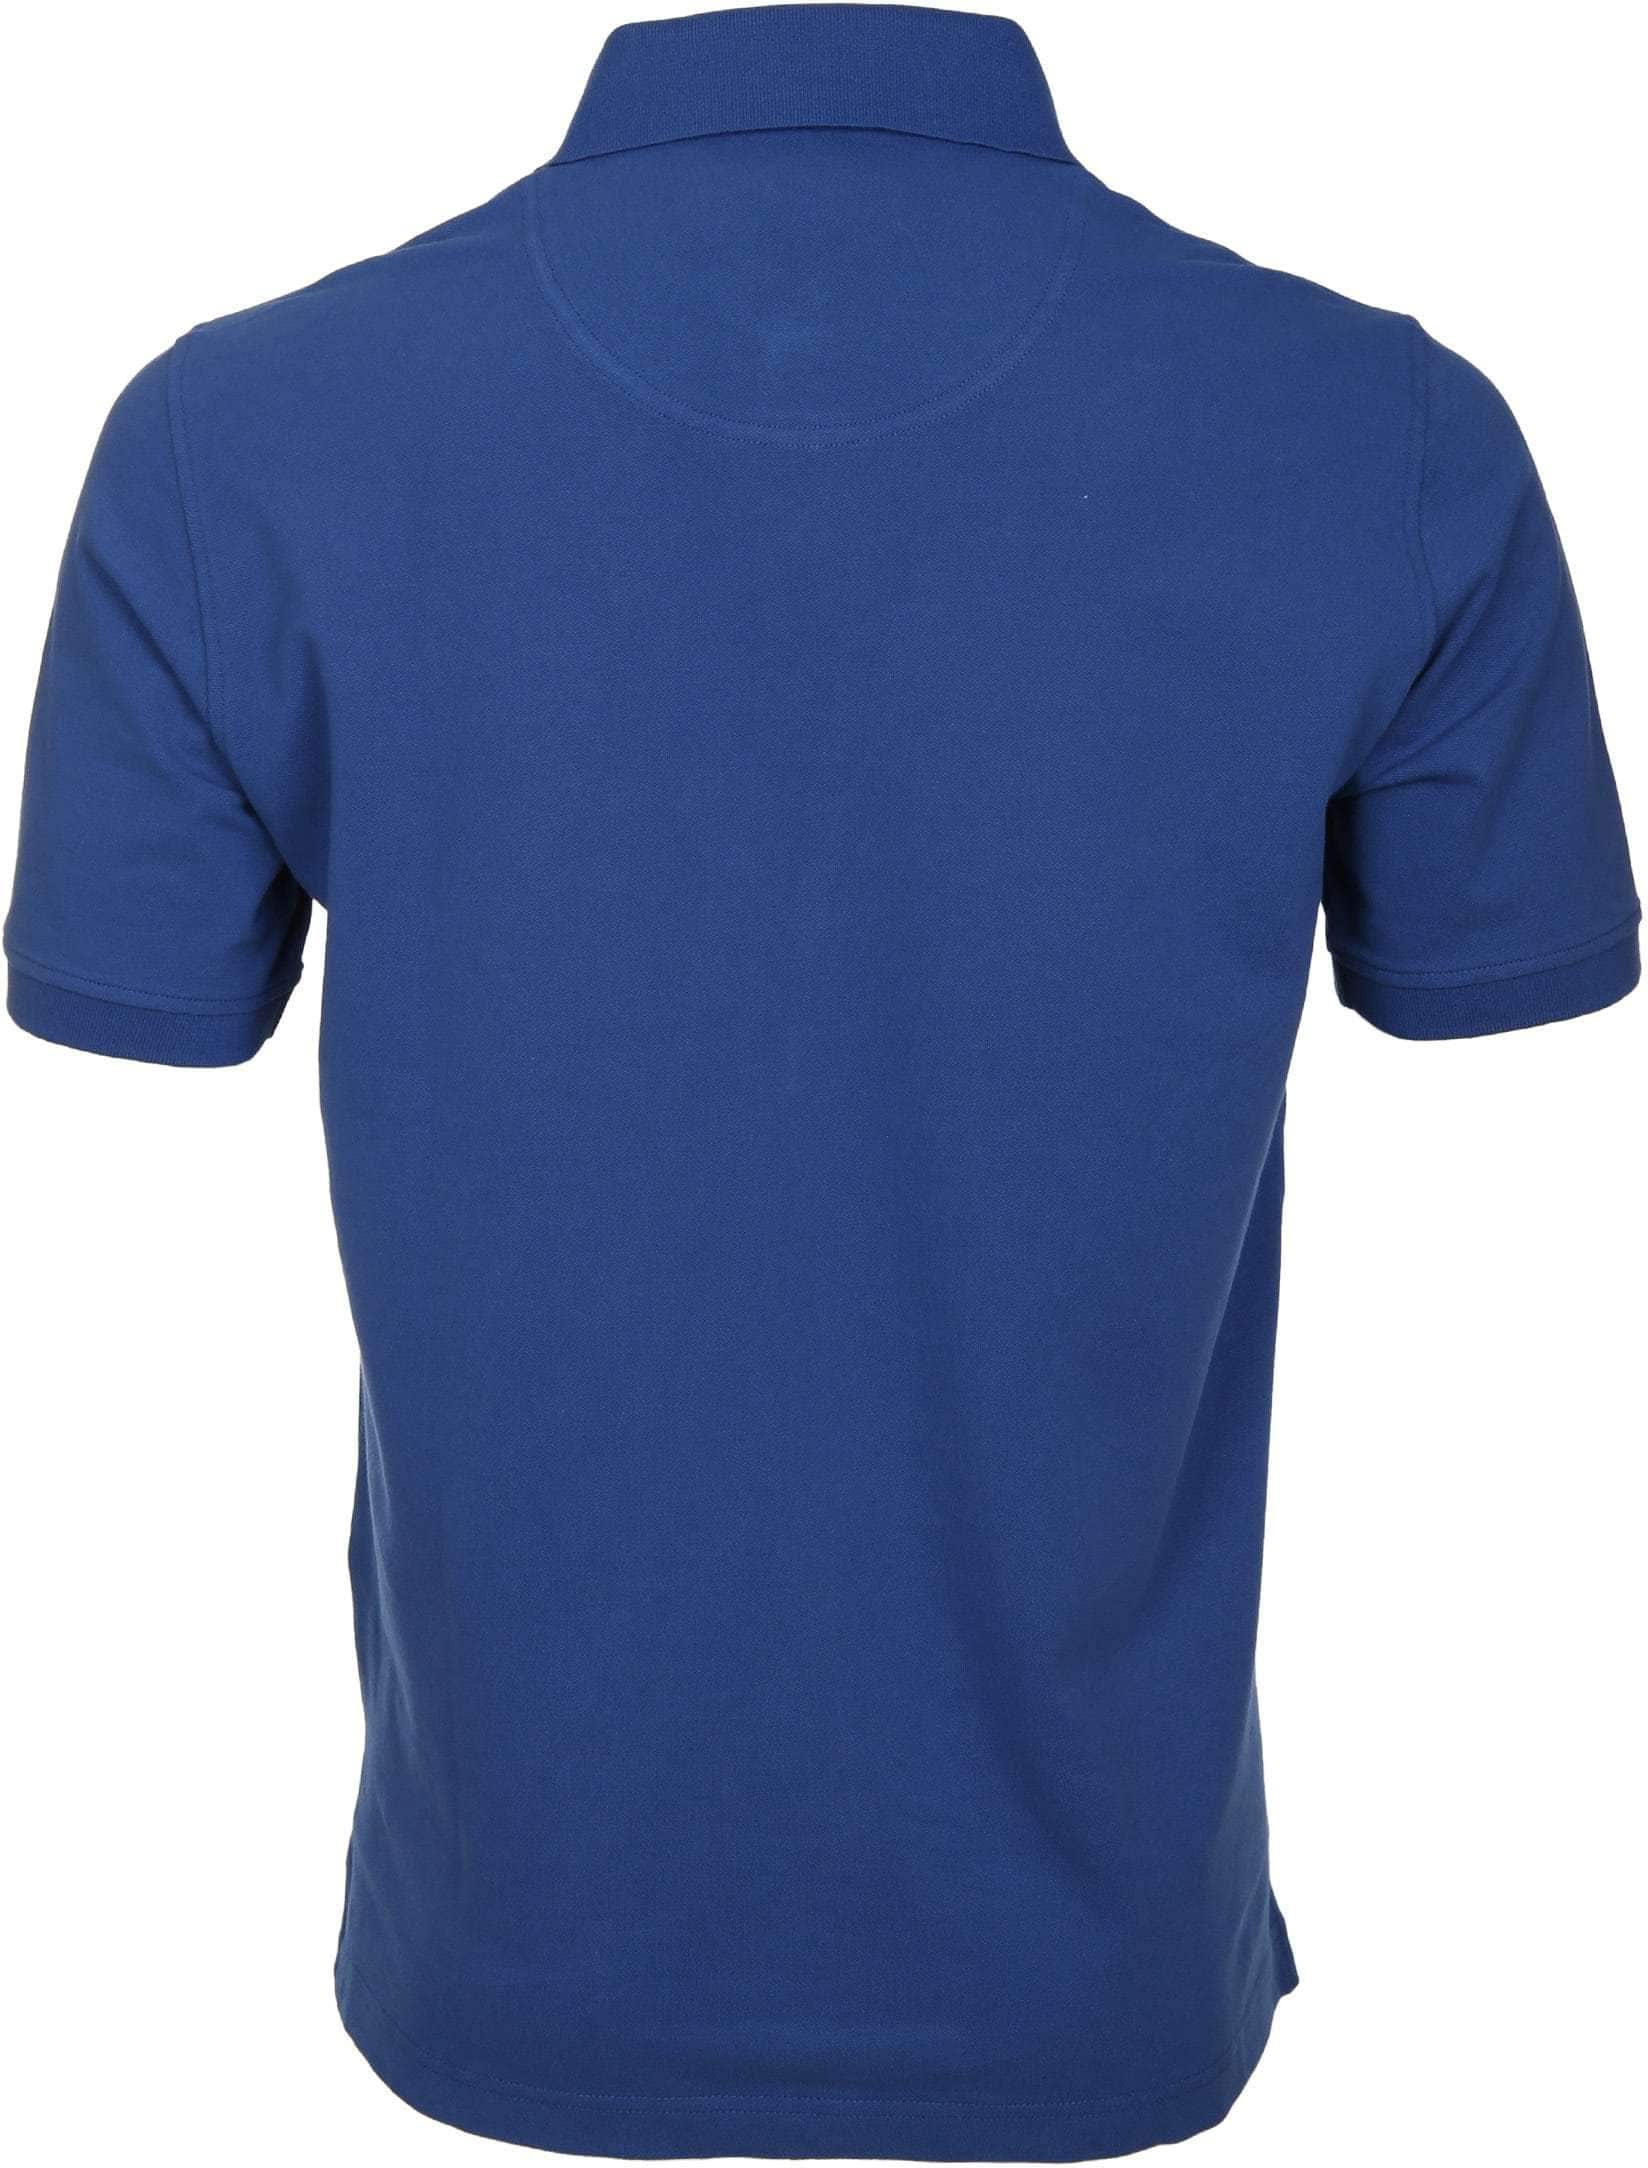 Suitable Polo Basic Royal Blauw foto 4